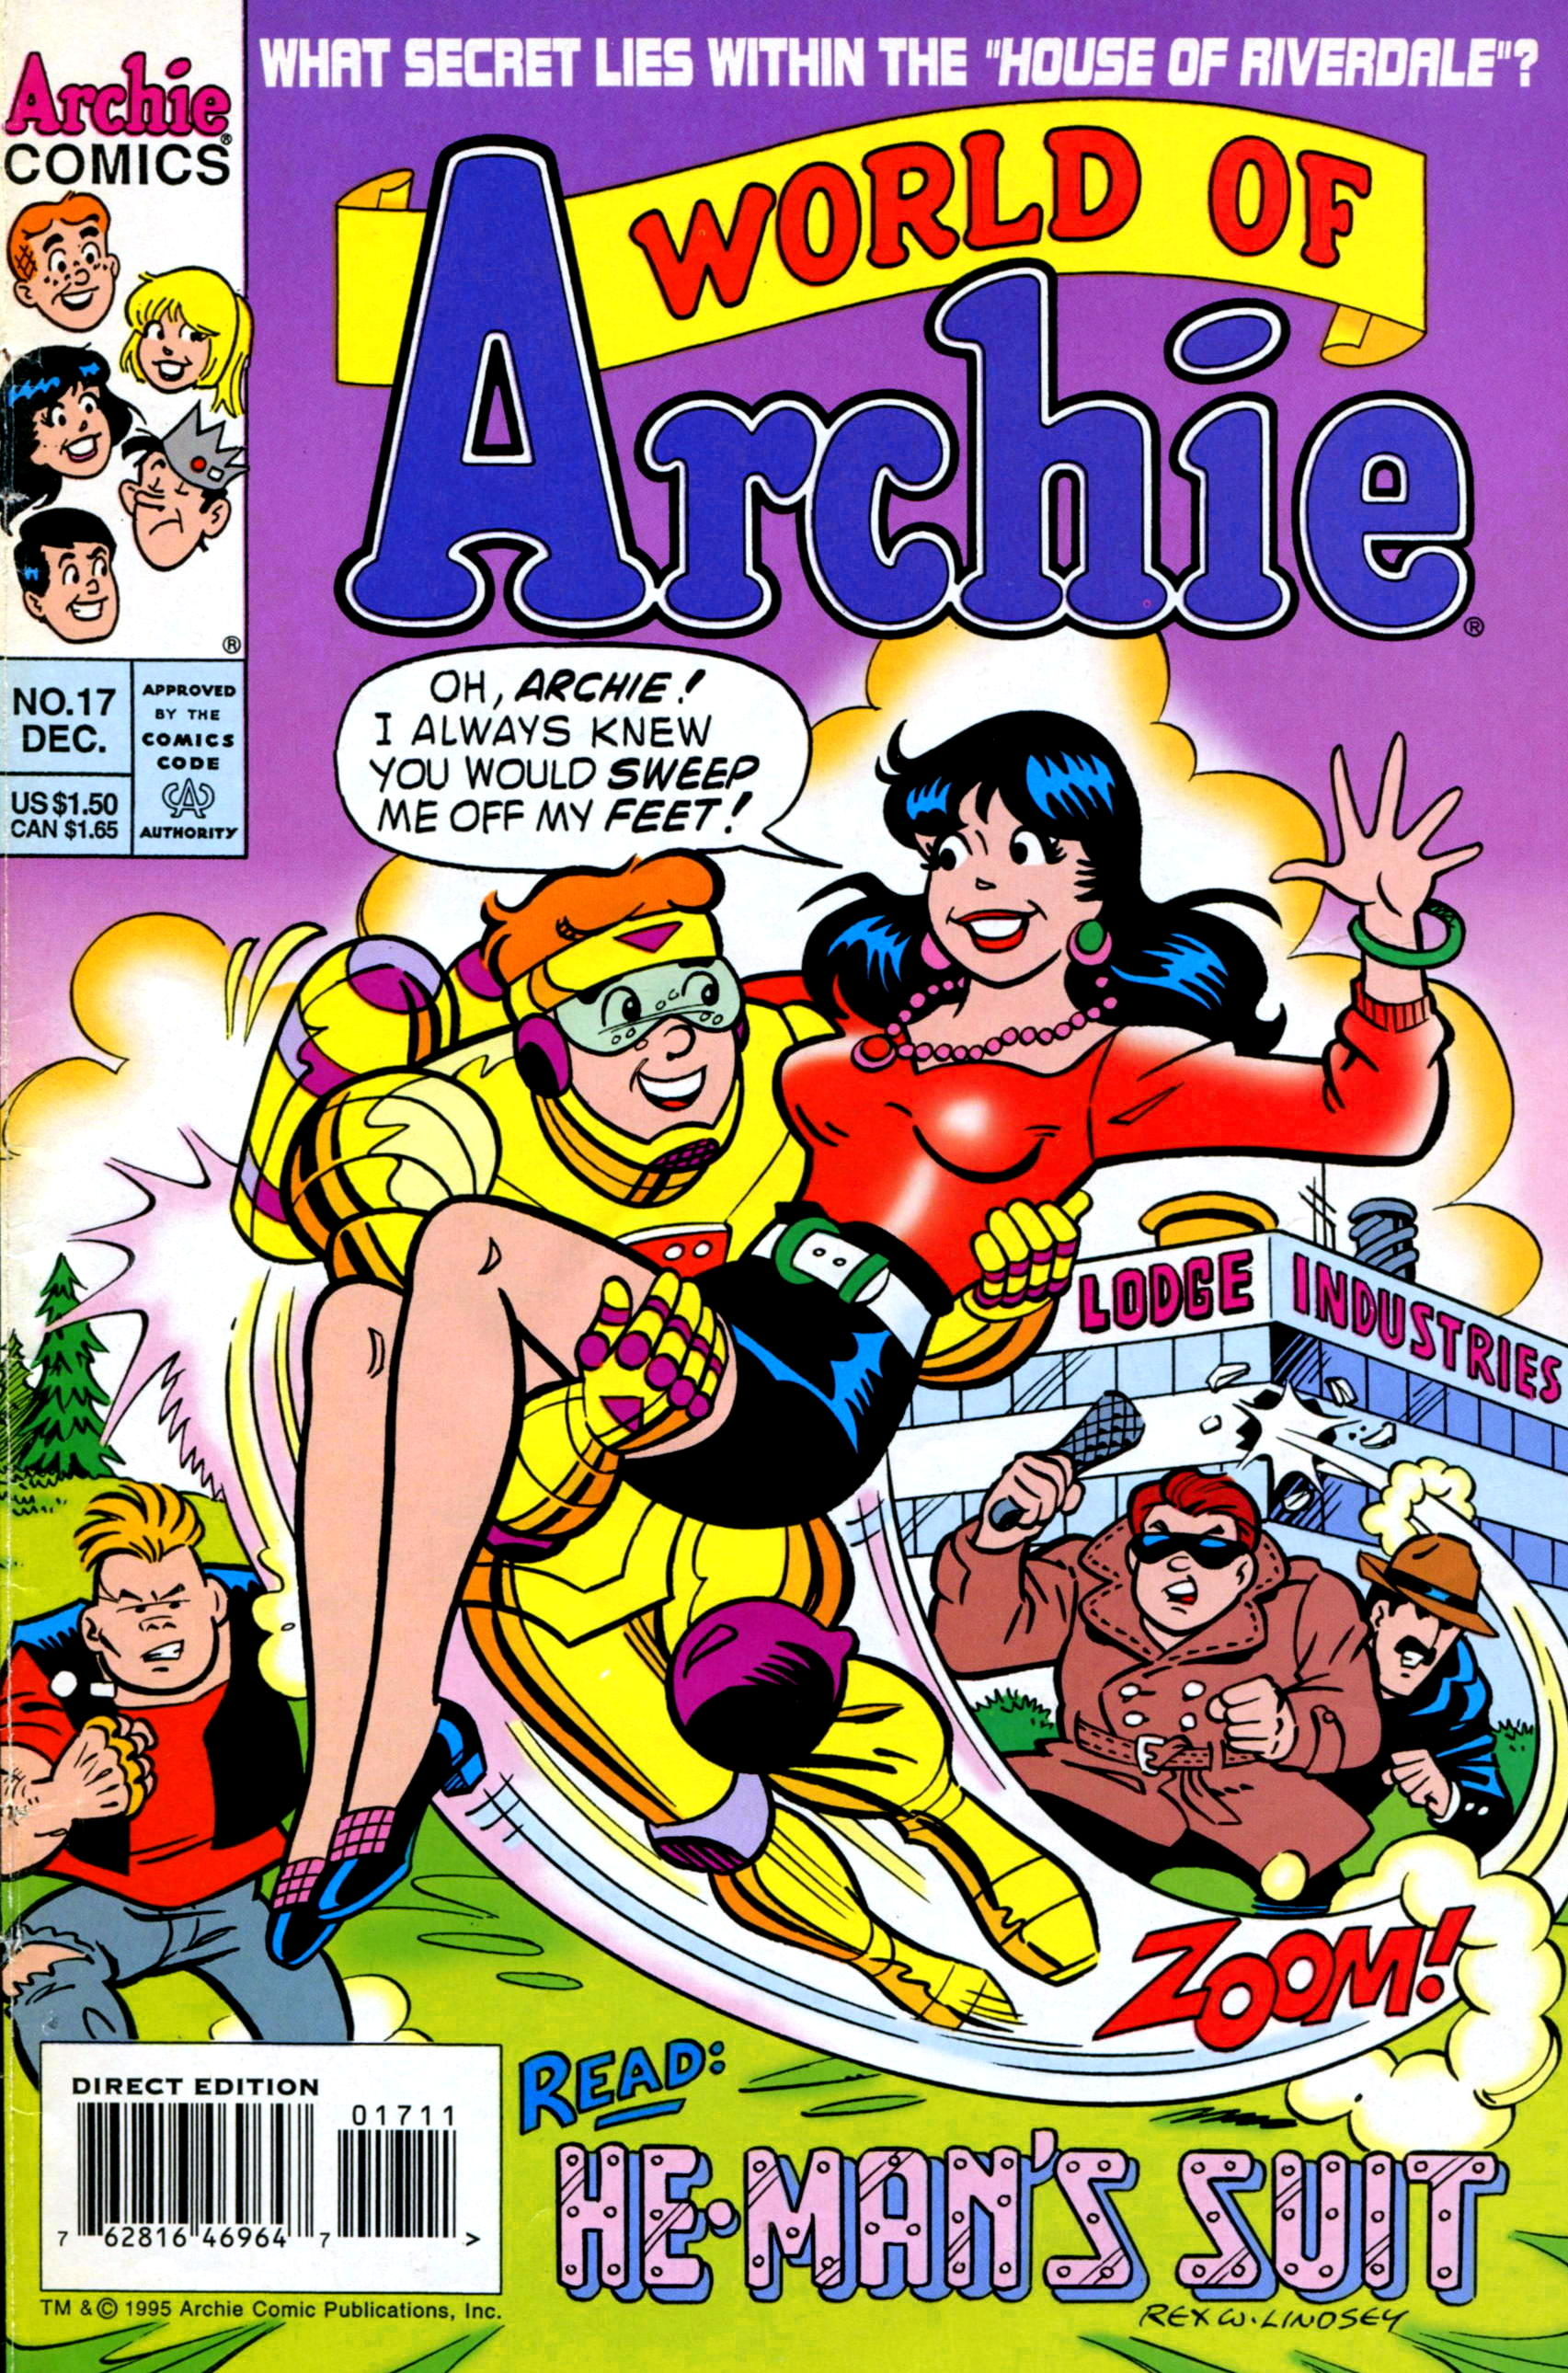 Read online World of Archie comic -  Issue #17 - 1